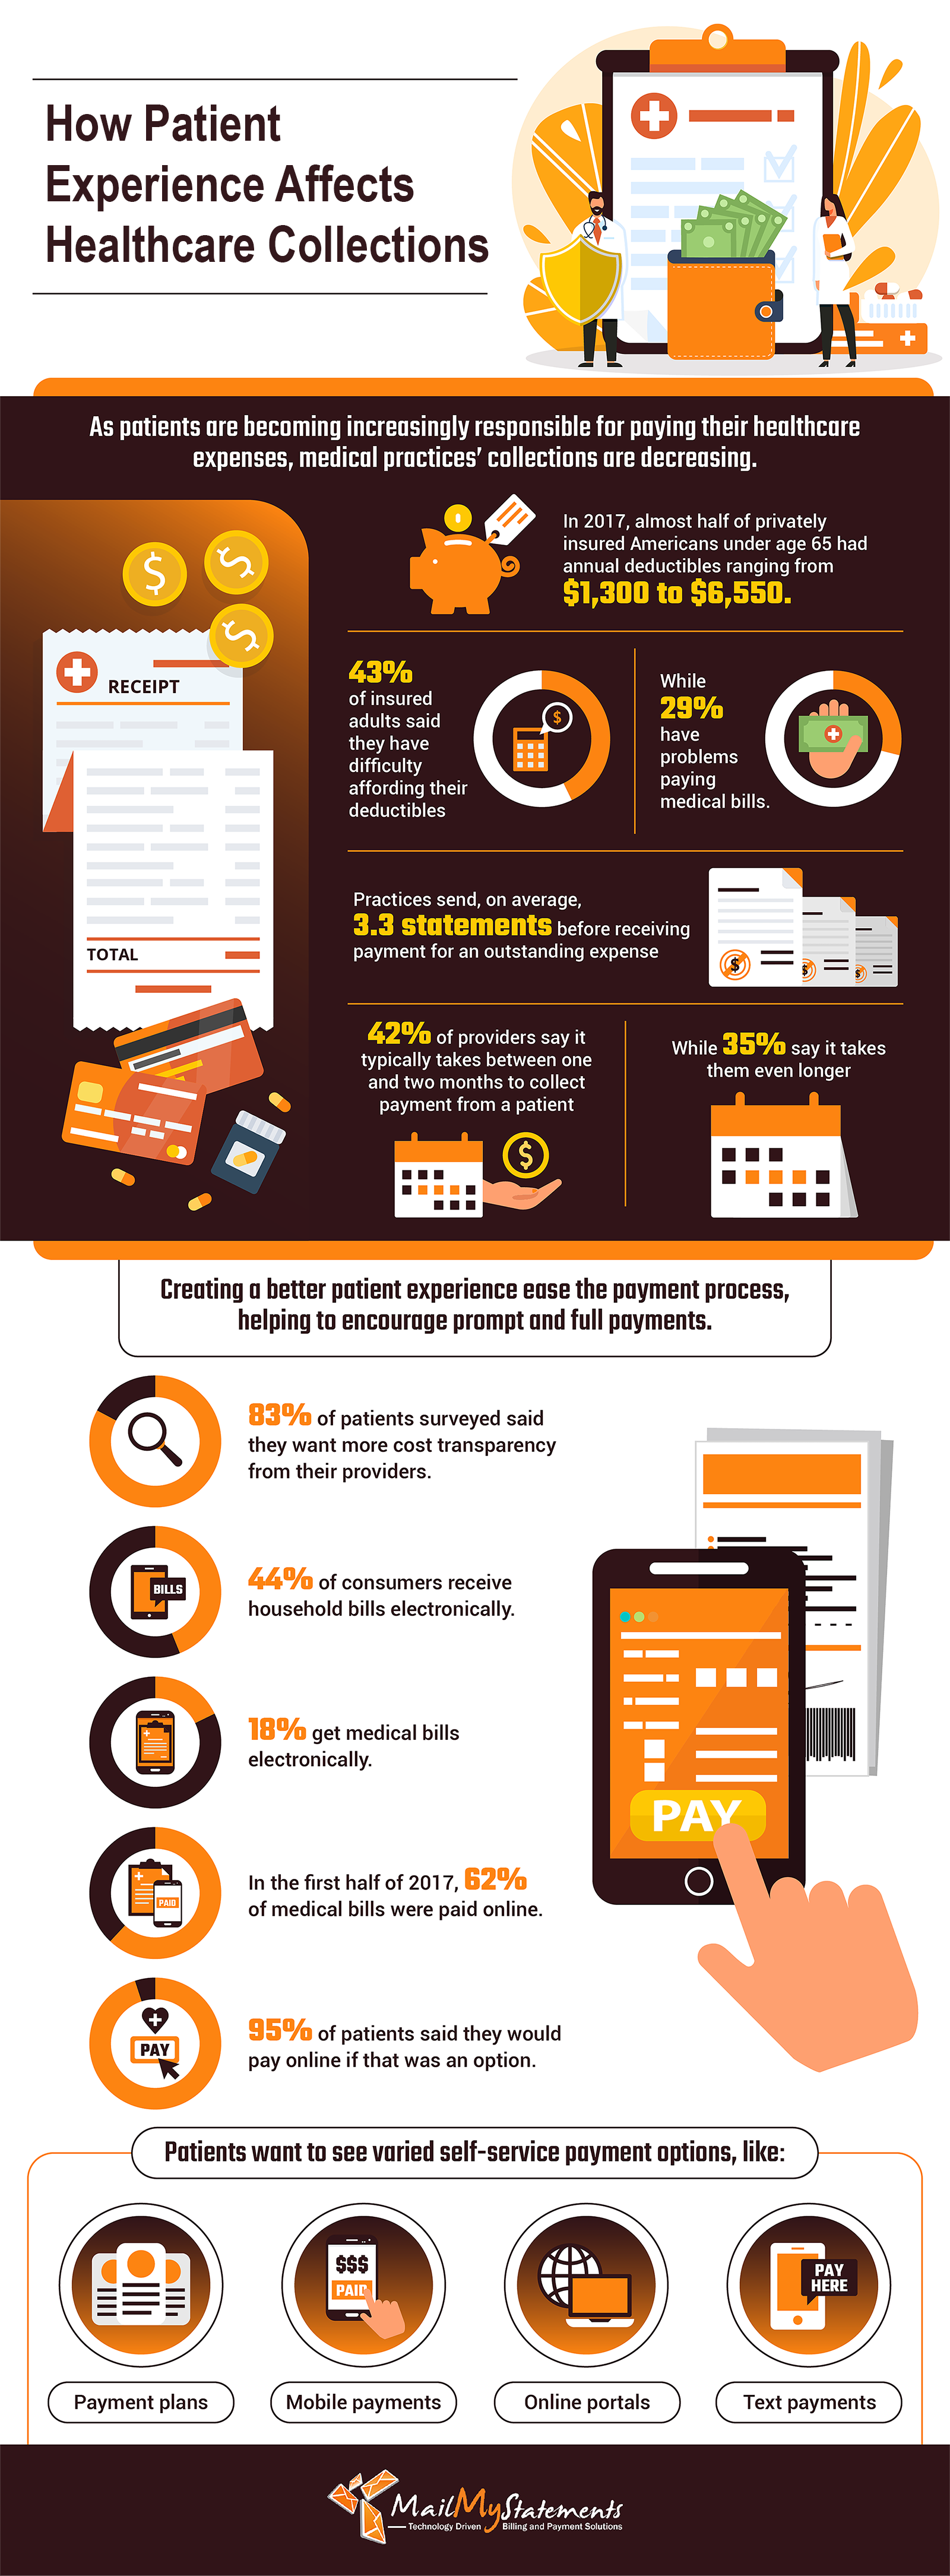 How Patient Experience Affects Healthcare Collections